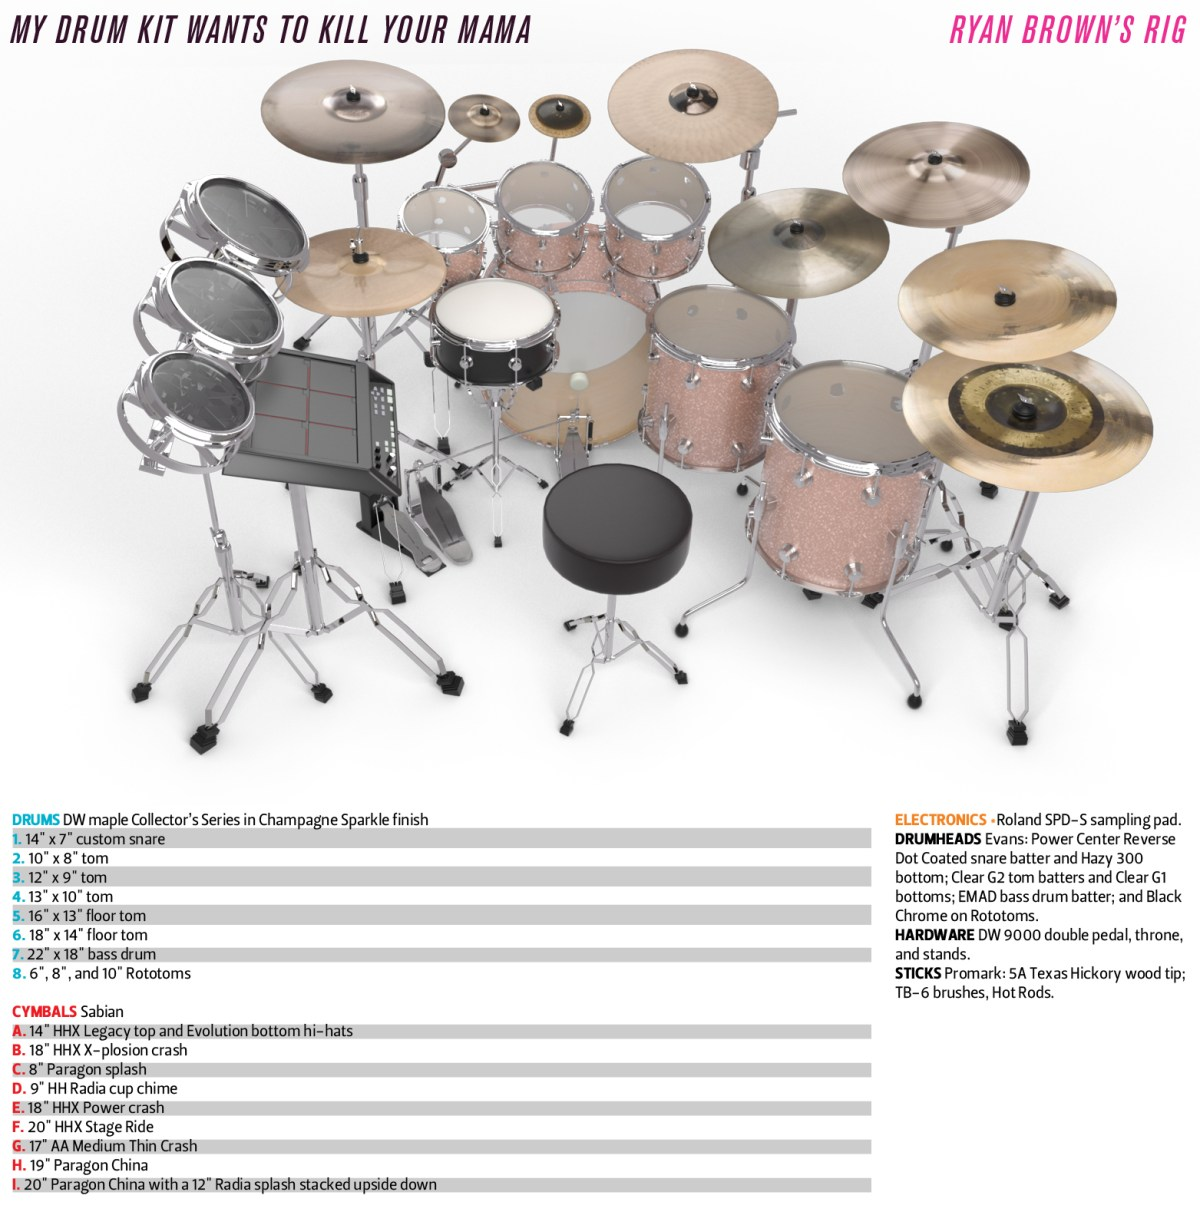 choosing your first drum kit � drum kit diagram: ryan brown: channeling  frank zappa's drummers